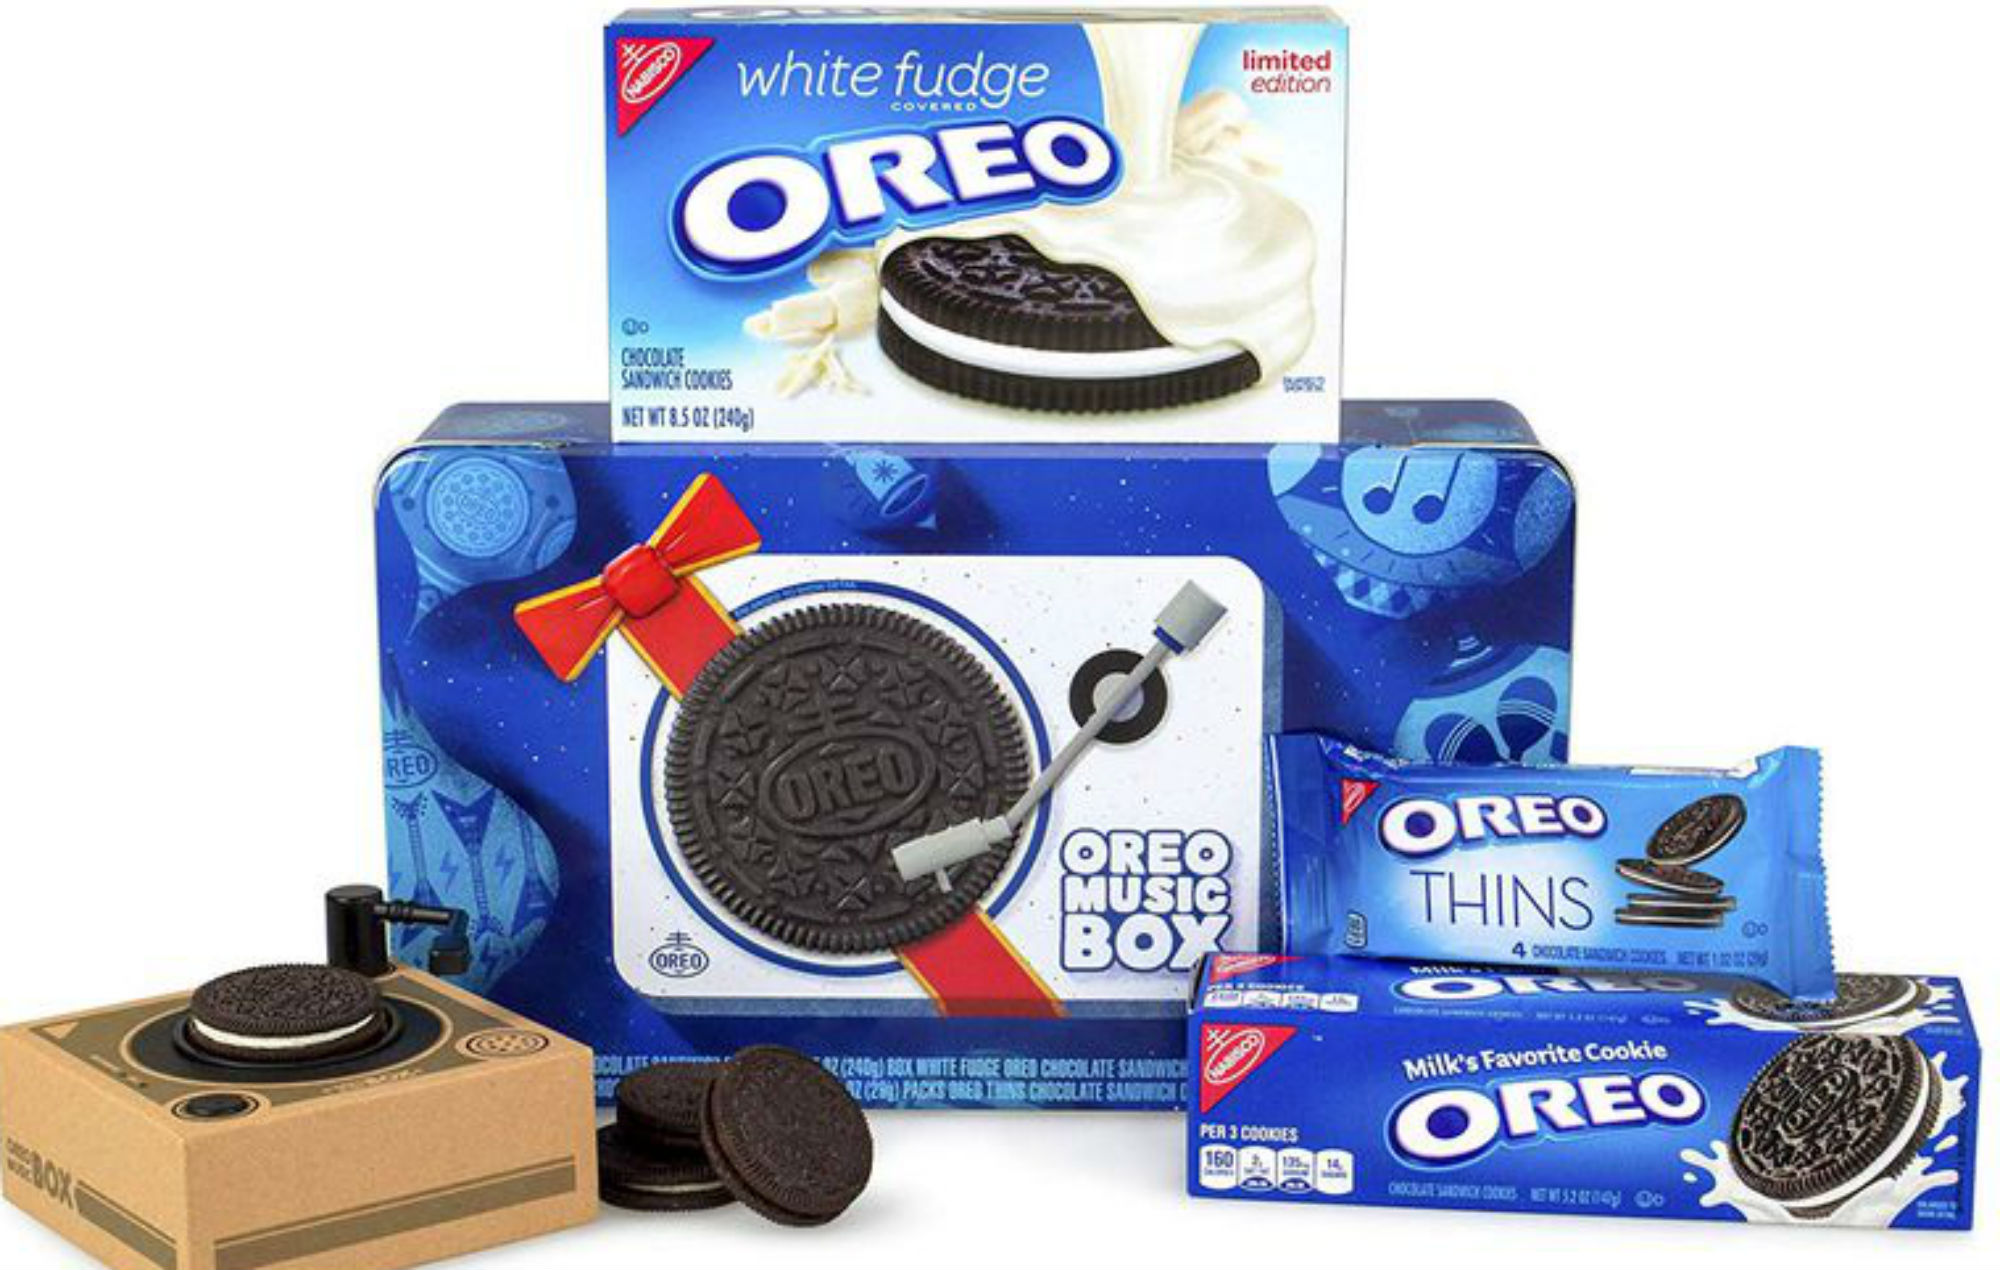 Oreo Is Releasing A Record Player That Actually Plays Music And Cookies